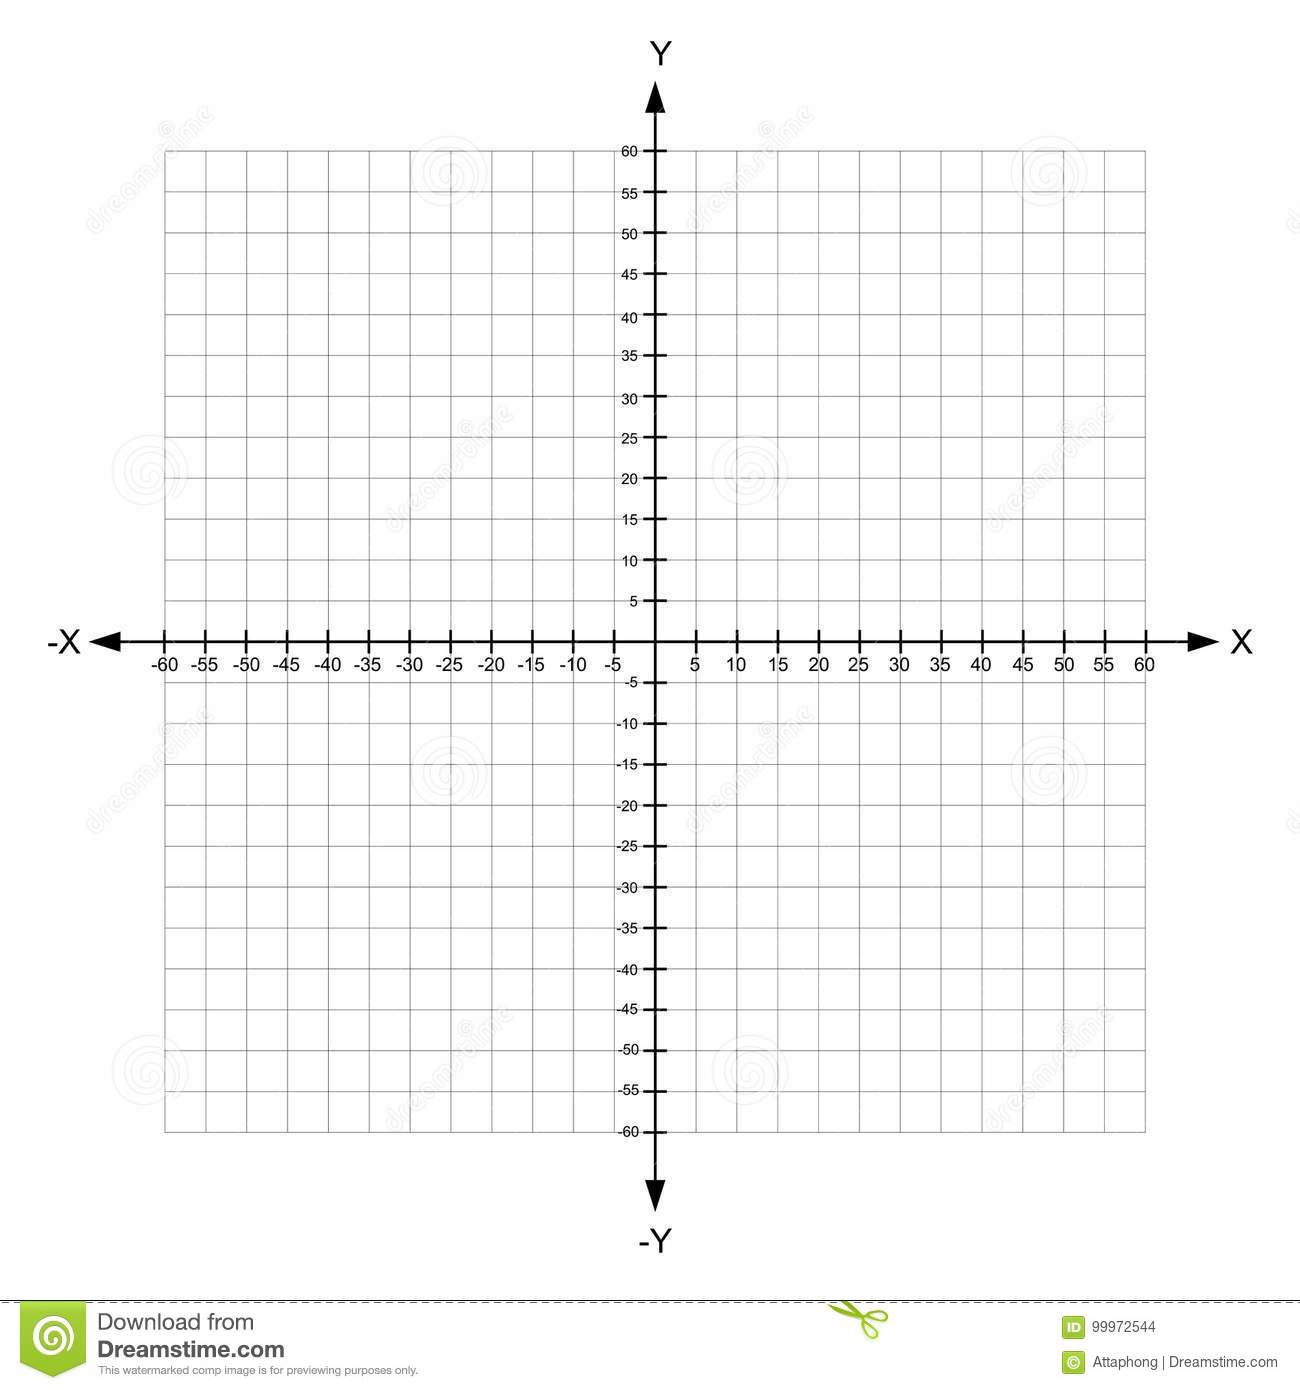 worksheet Xy Graph Paper graph paper with multiple graphs cups pints quarts gallons worksheets x and y axis numbers clock math blank cartesian coordinate plane white backgroun